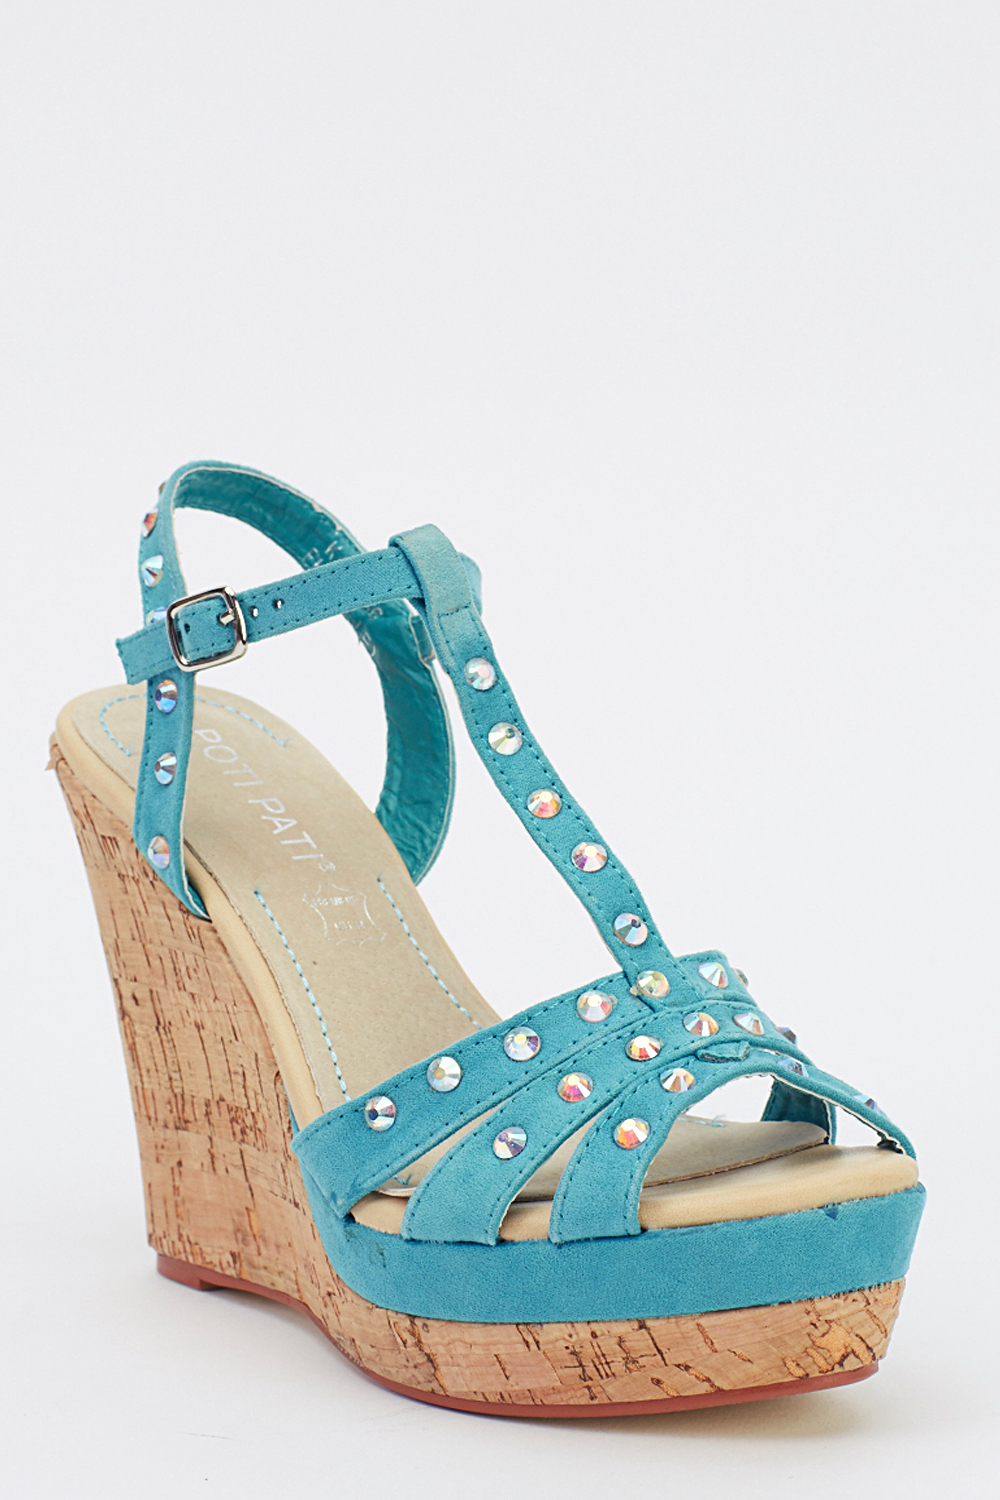 47f1bb3ac97 Cork Wedge Studded Sandals - Just £5